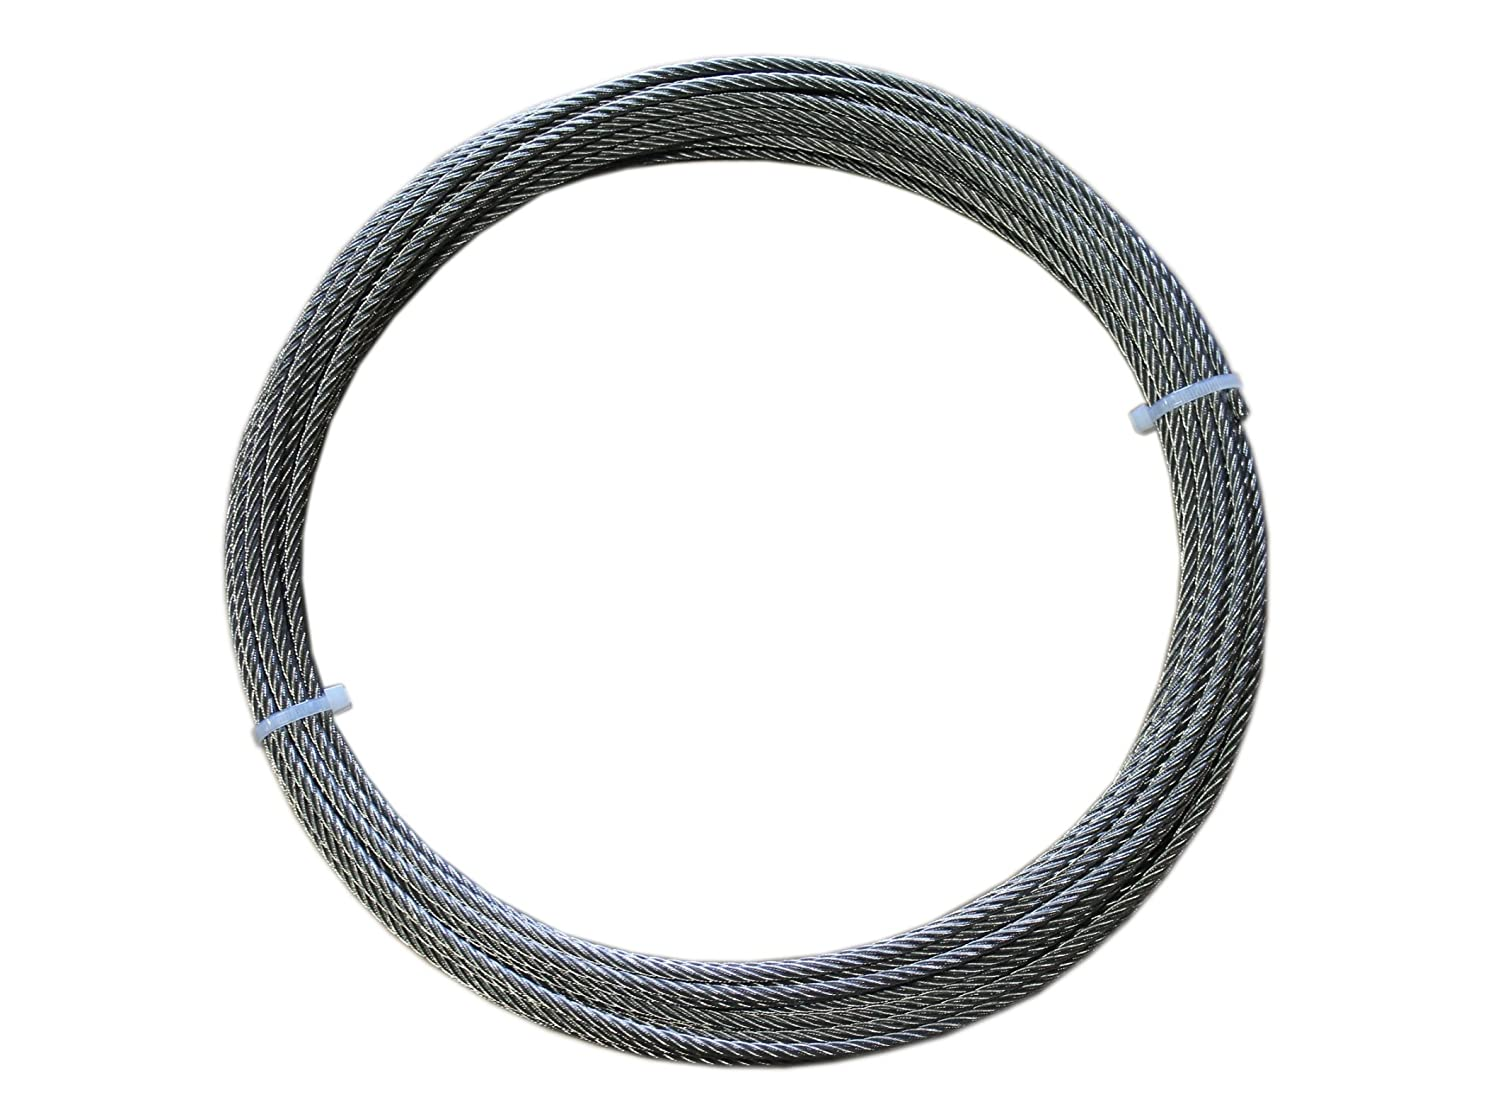 Loos Stainless Steel 316 Wire Rope, 7x19 Strand Core, 1/4' Bare OD, 100' Length, 4900 lbs Breaking Strength 1/4 Bare OD 100' Length Loos & Co SZ084XXXX-0100C CA00K585